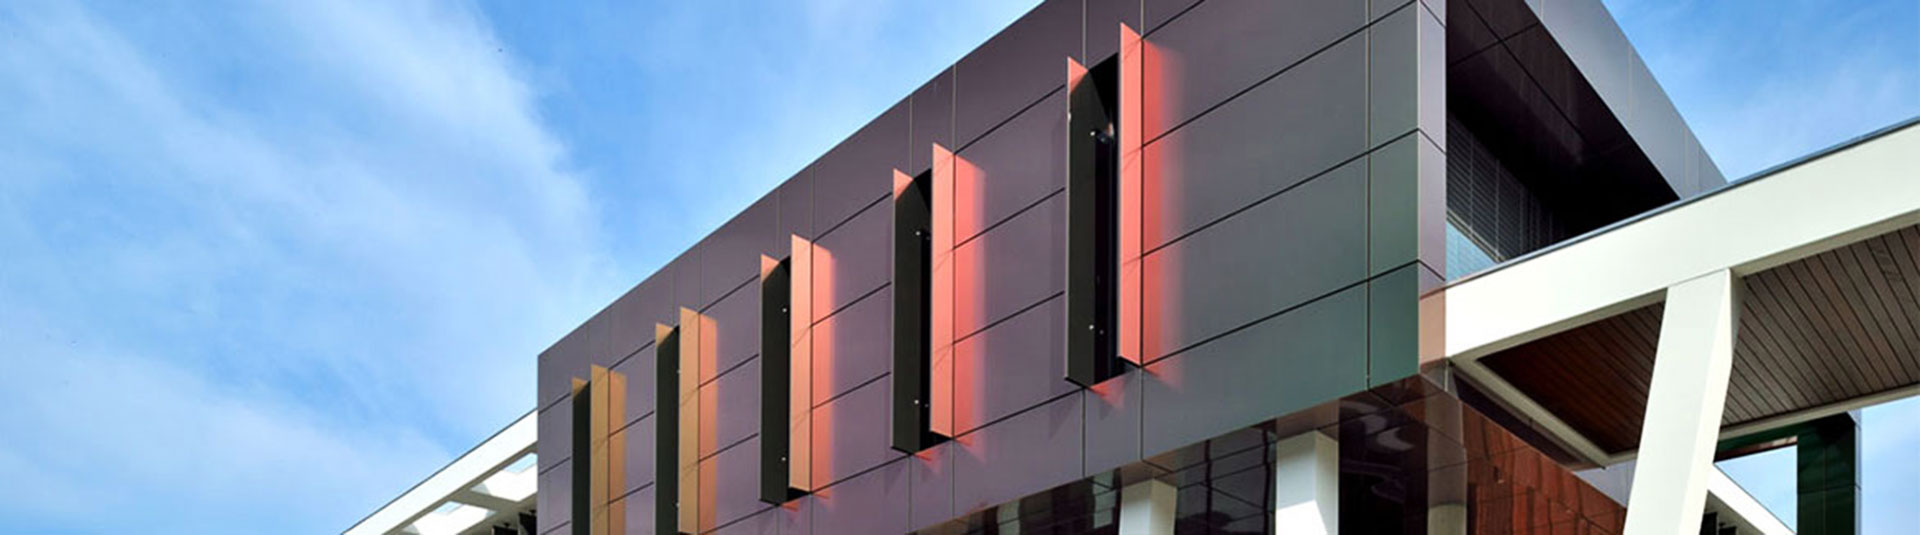 Application of aluminum composite wall panels in home decoration